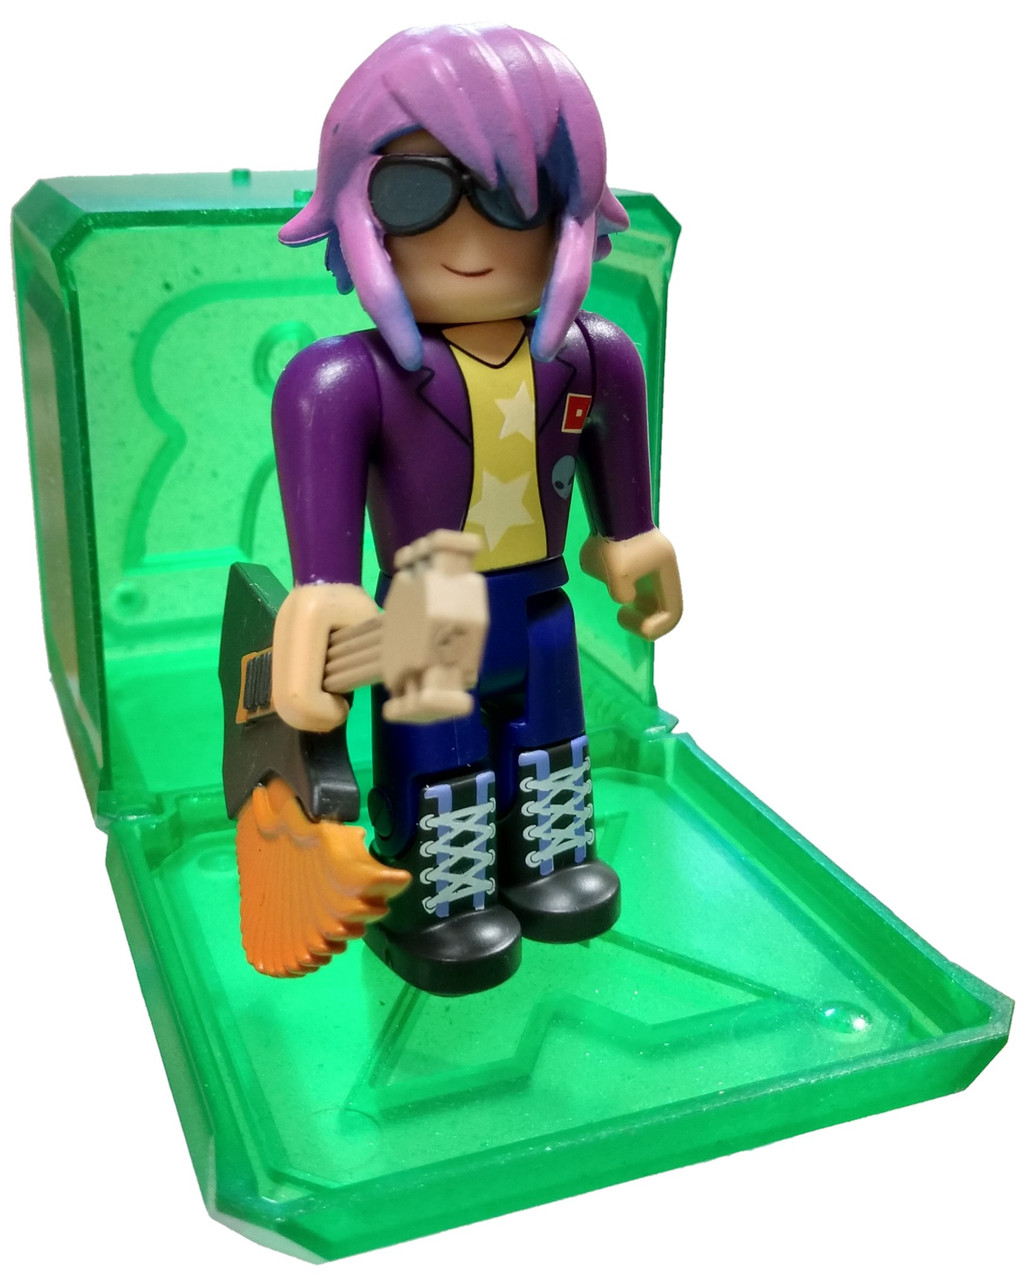 Ro Beats Roblox Roblox Celebrity Collection Series 4 Robeats Starlet 3 Mini Figure With Green Cube And Online Code Loose Jazwares Toywiz